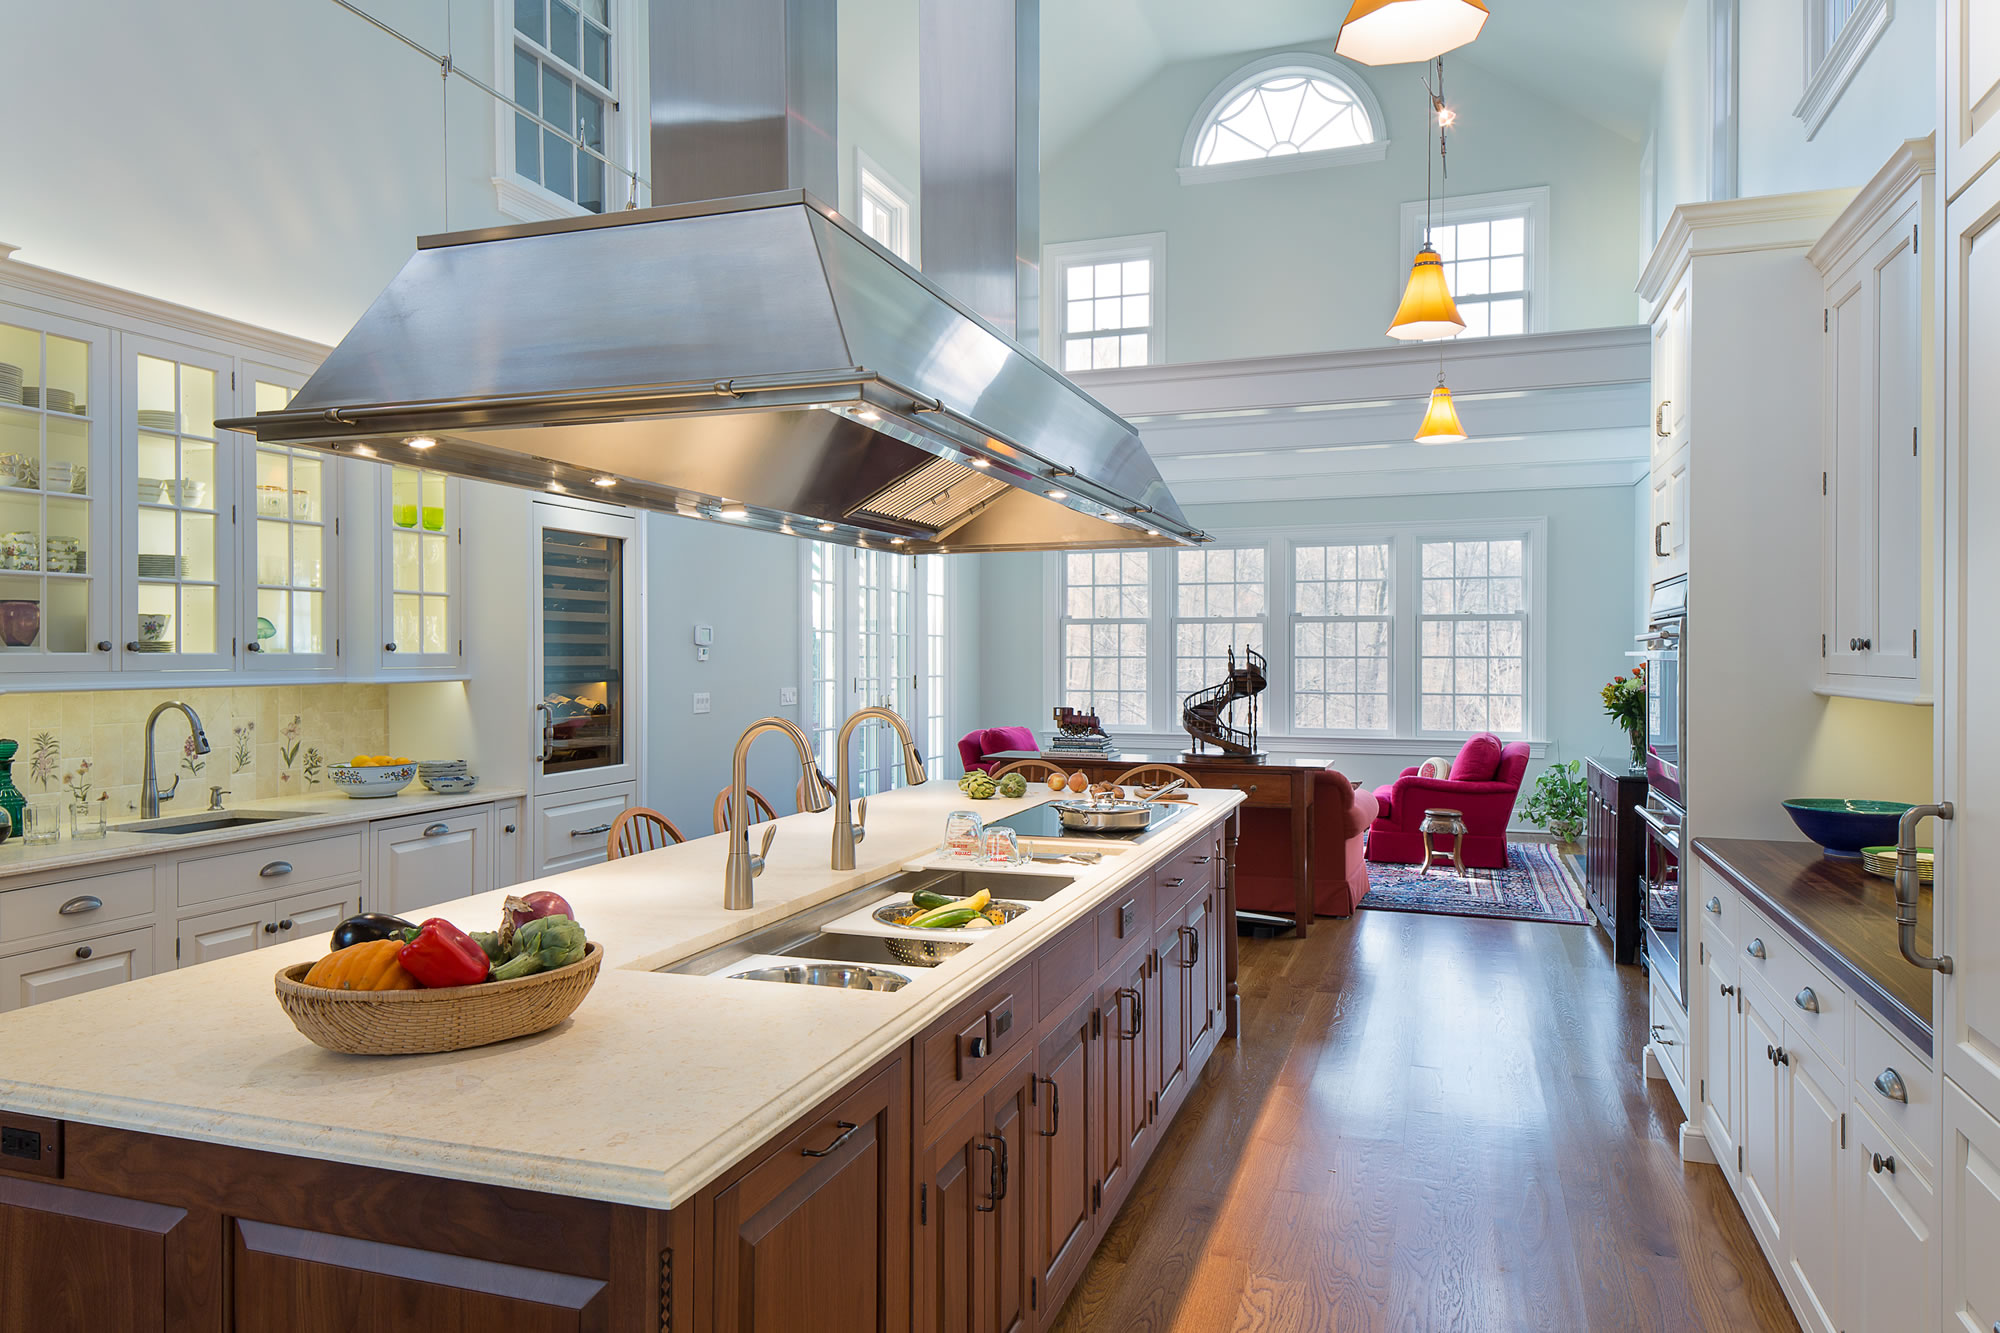 Home Design  Roomscapes in Vermont  Designs for Living